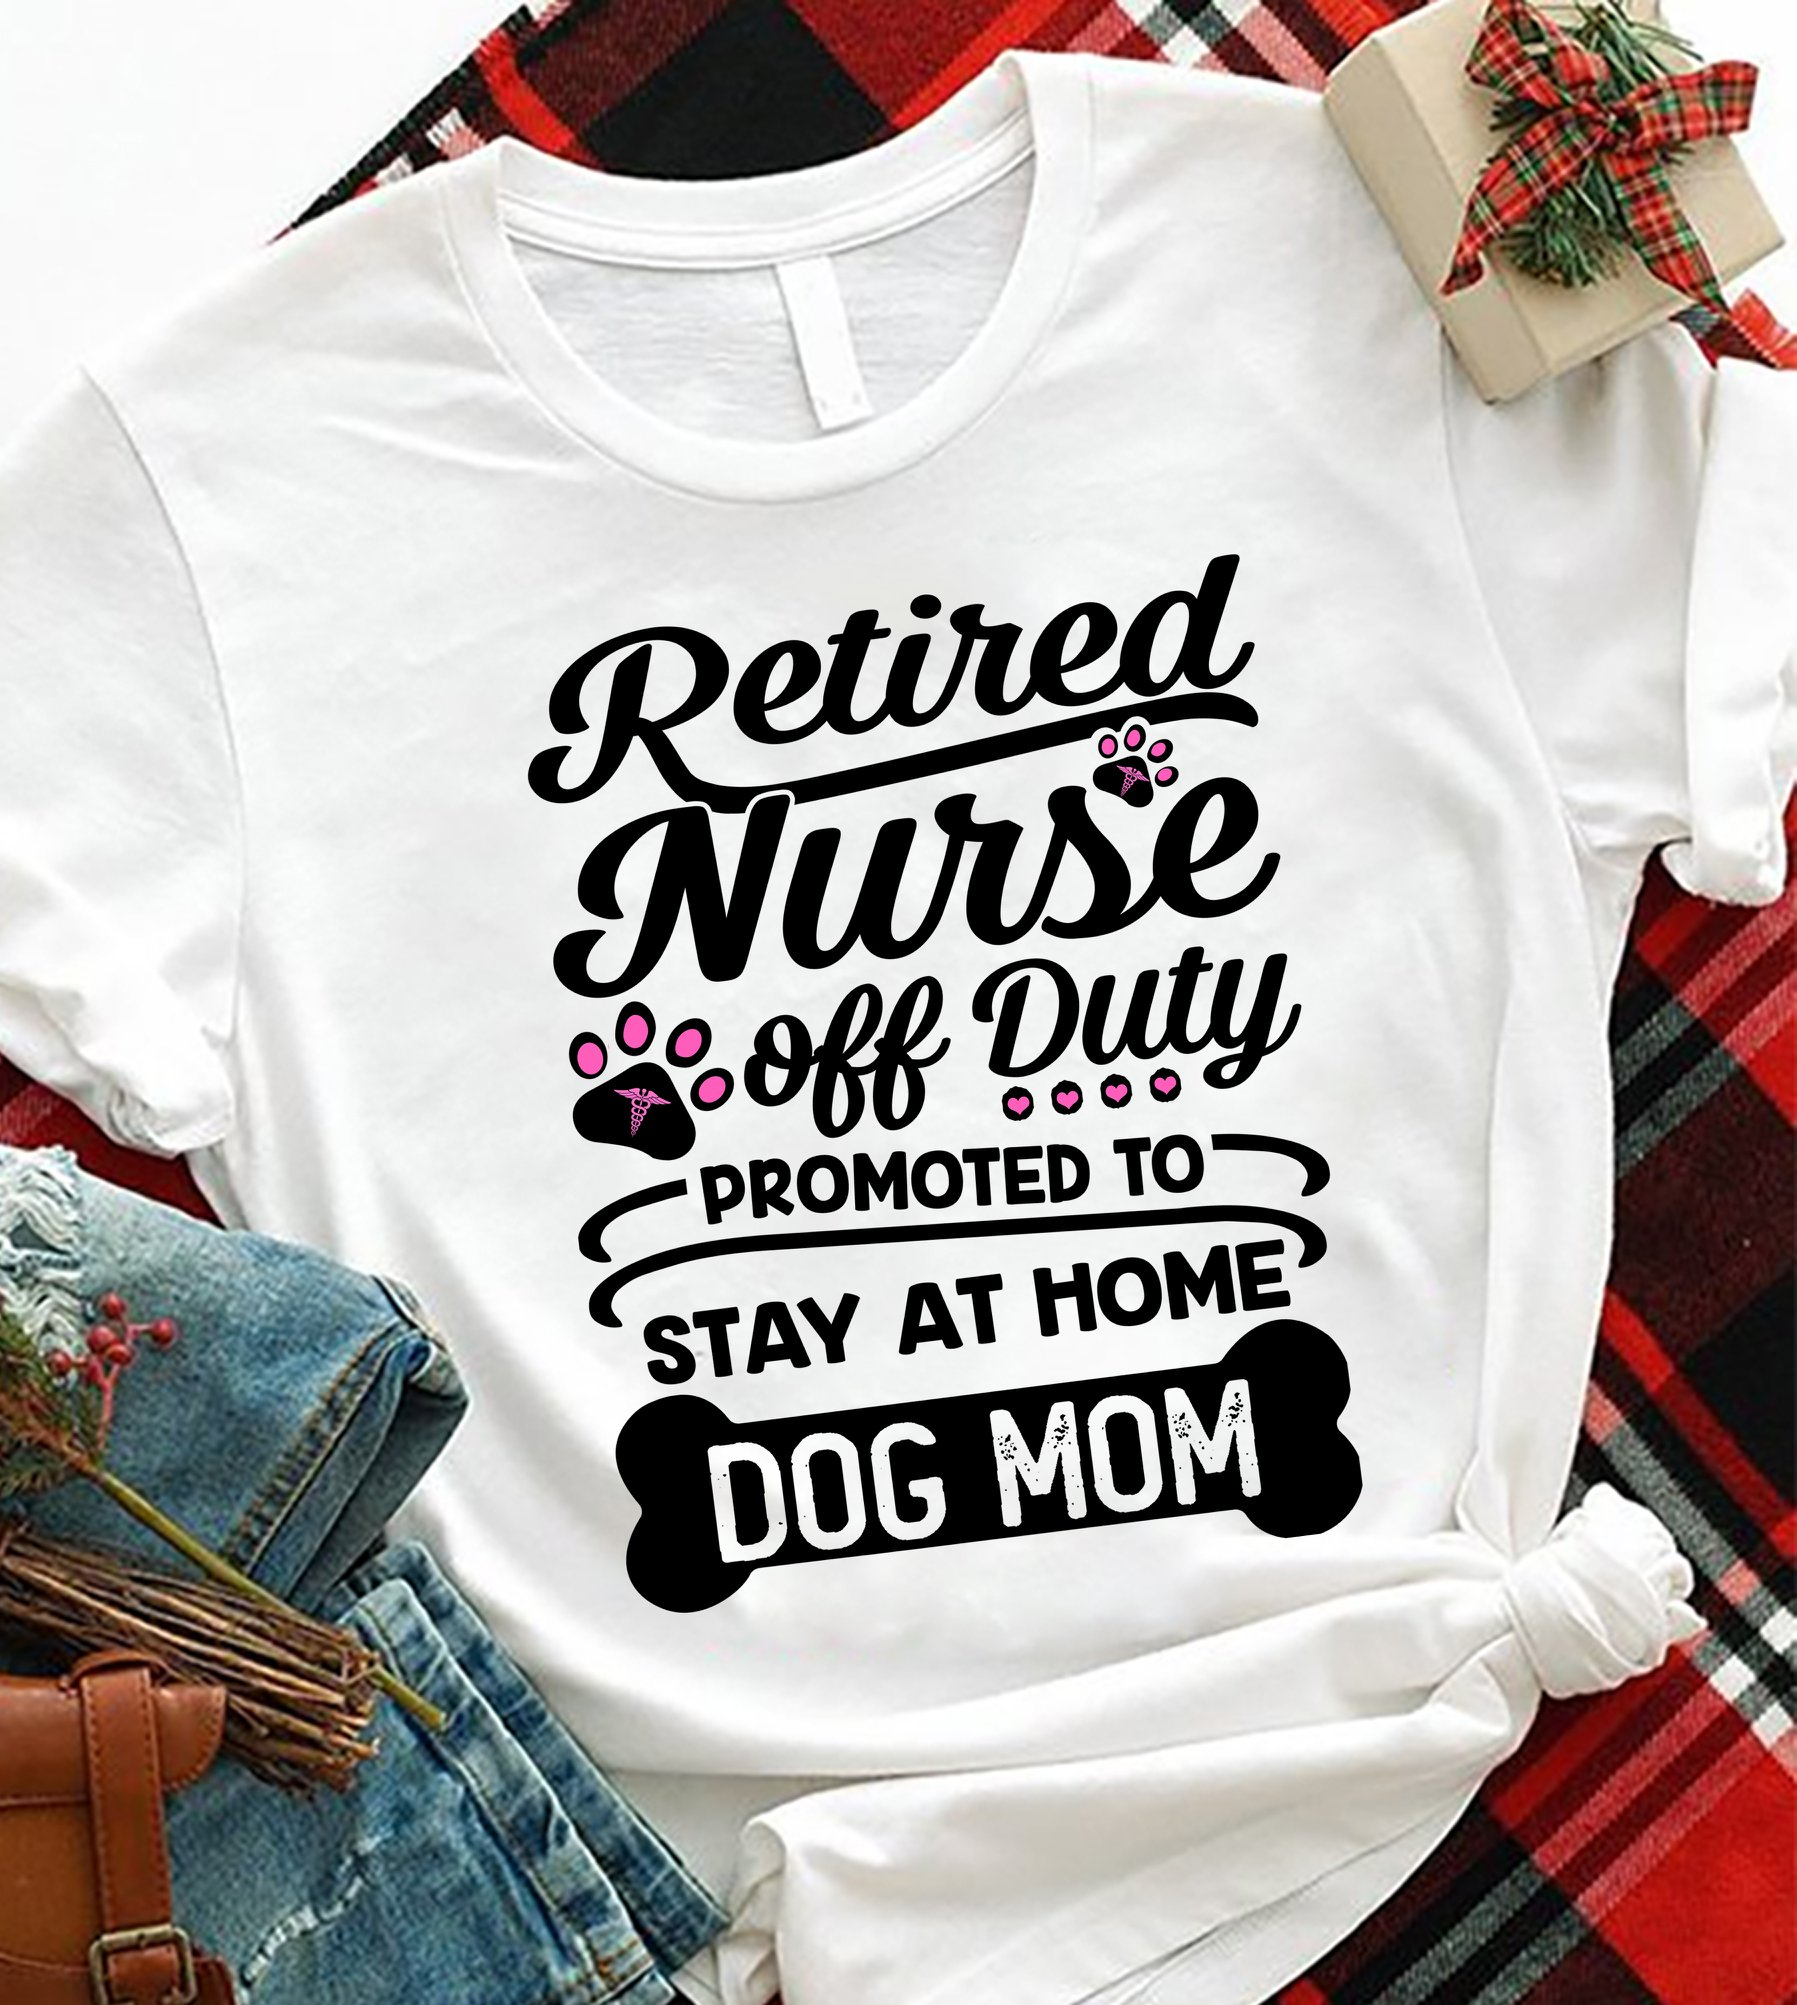 Retired Nurse Shirt Off Duty Stay At Home Dog Mom